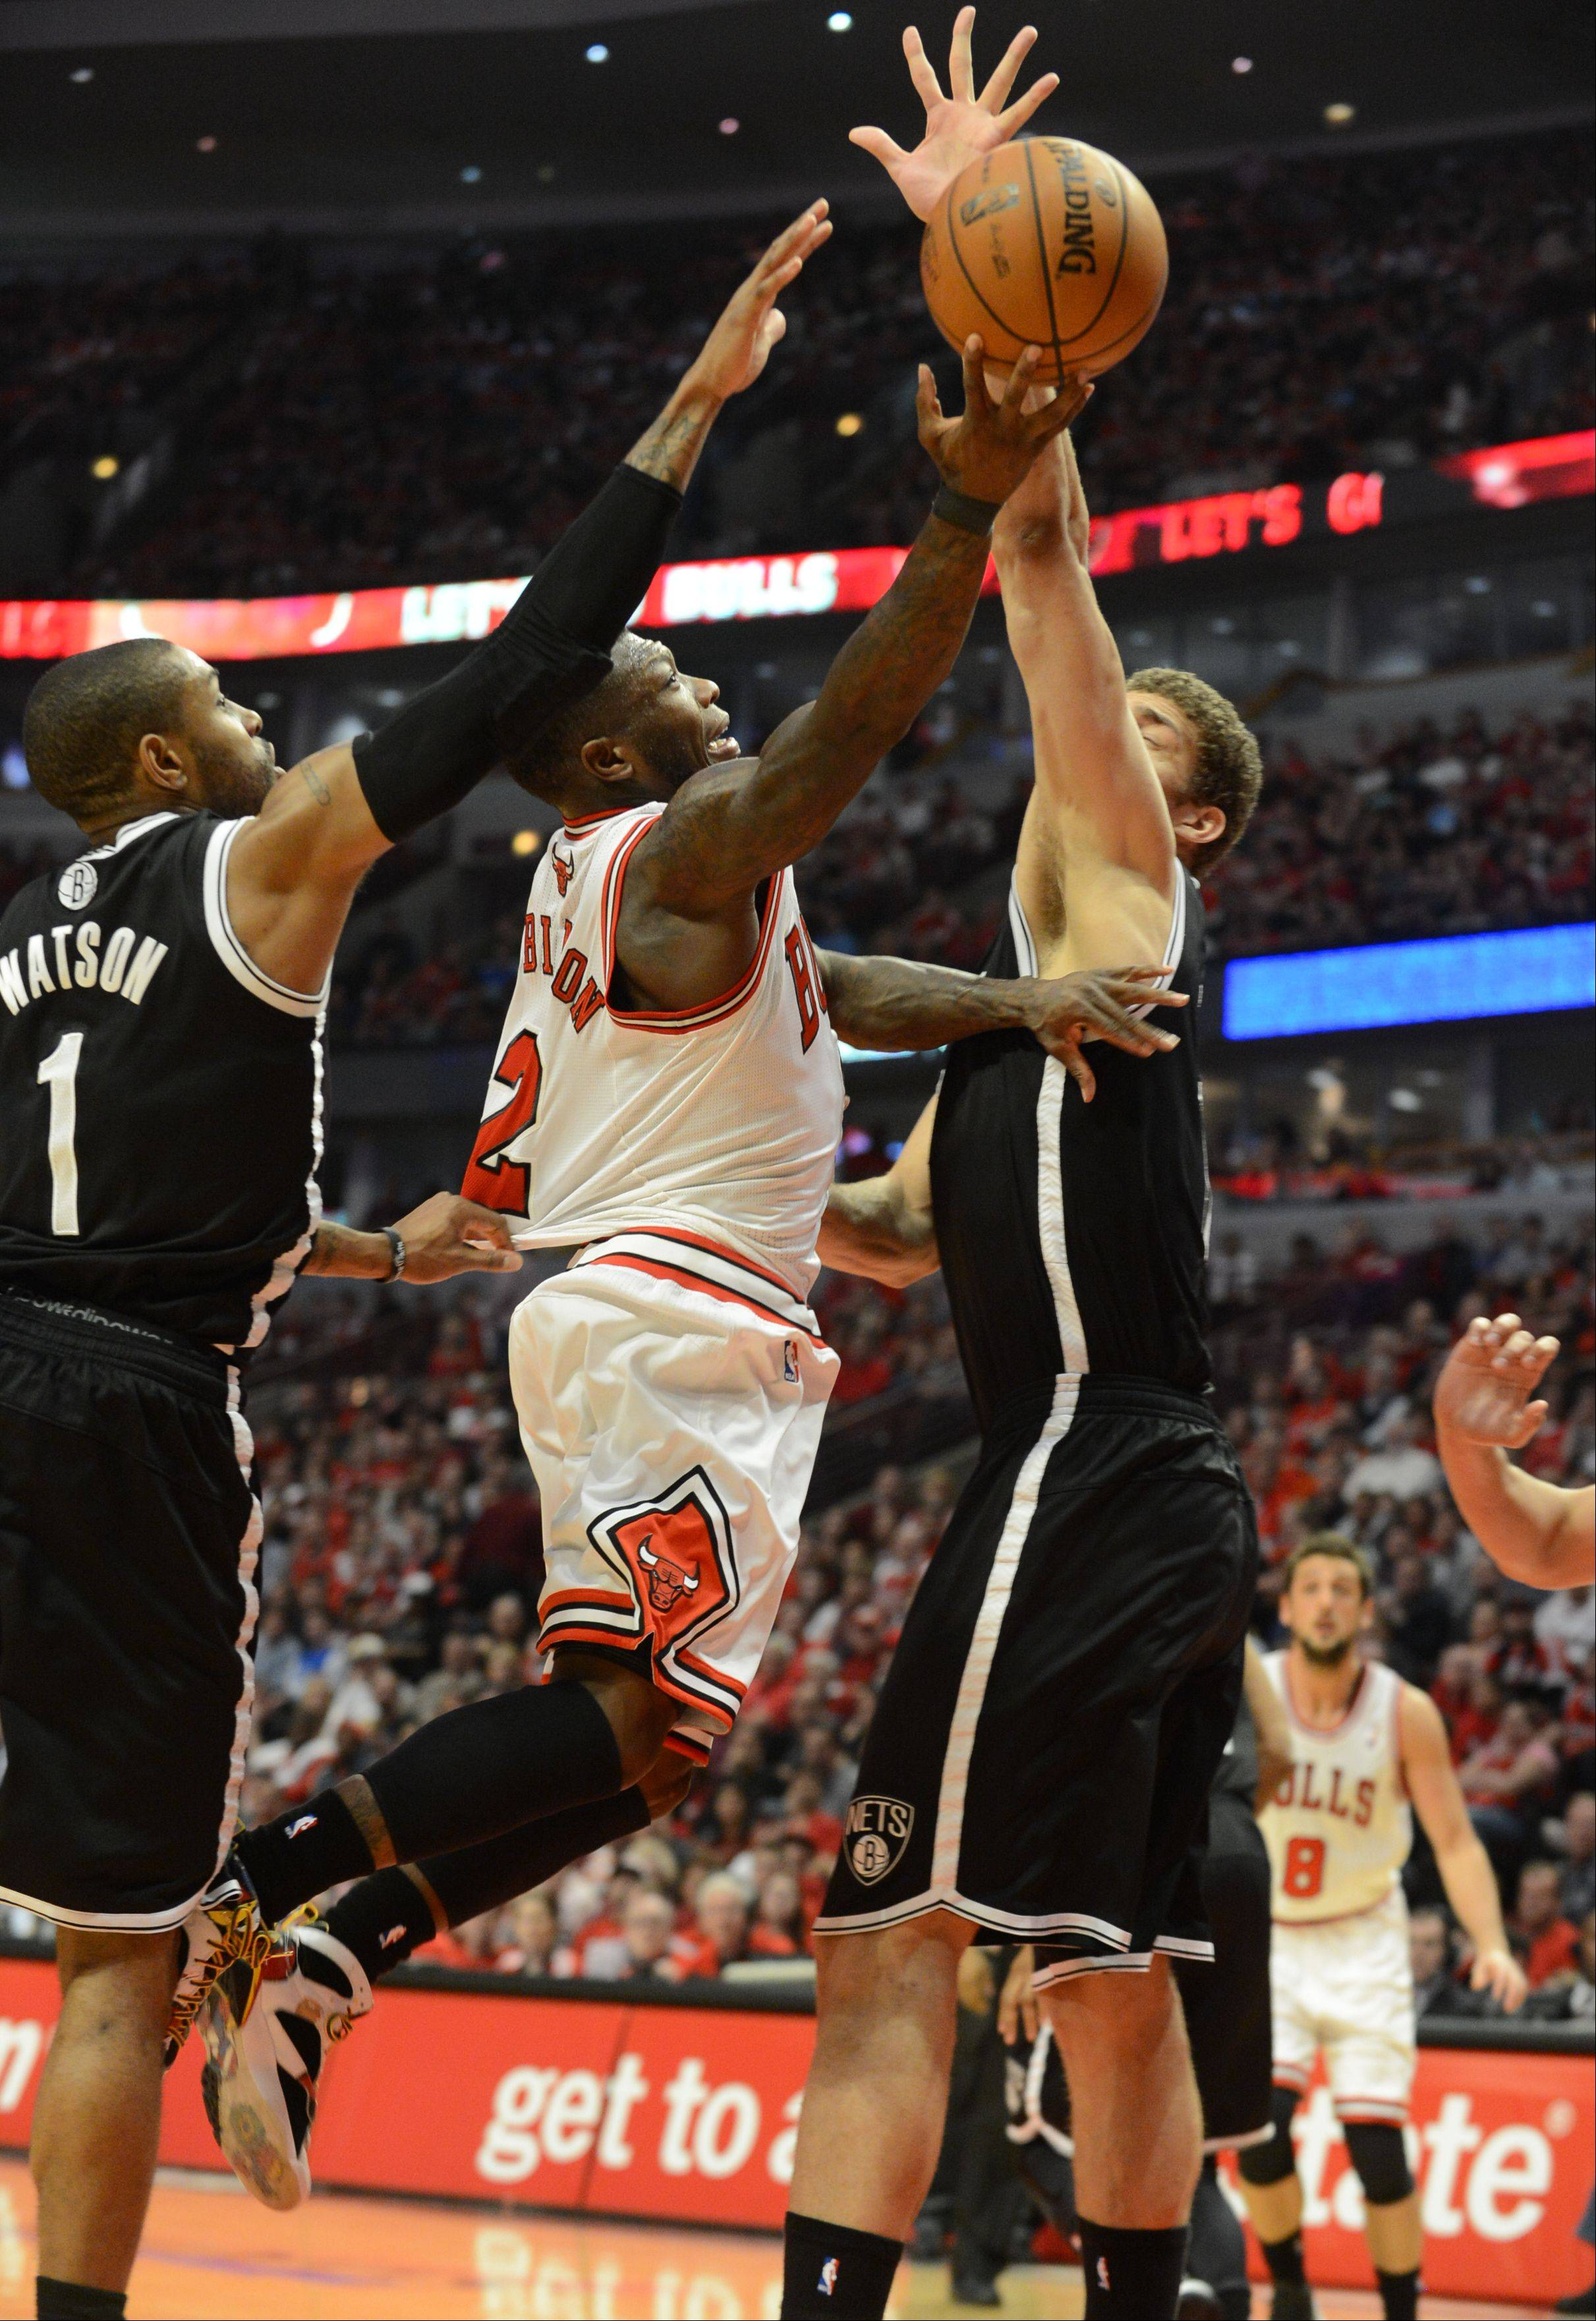 Nate Robinson goes for the basket between Brooklyn�s C.J. Watson, left, and Brook Lopez, right, Saturday during Game 4 of the first-round playoff game against the Brooklyn Nets at the United Center. The Bulls won 142-134 in triple overtime.